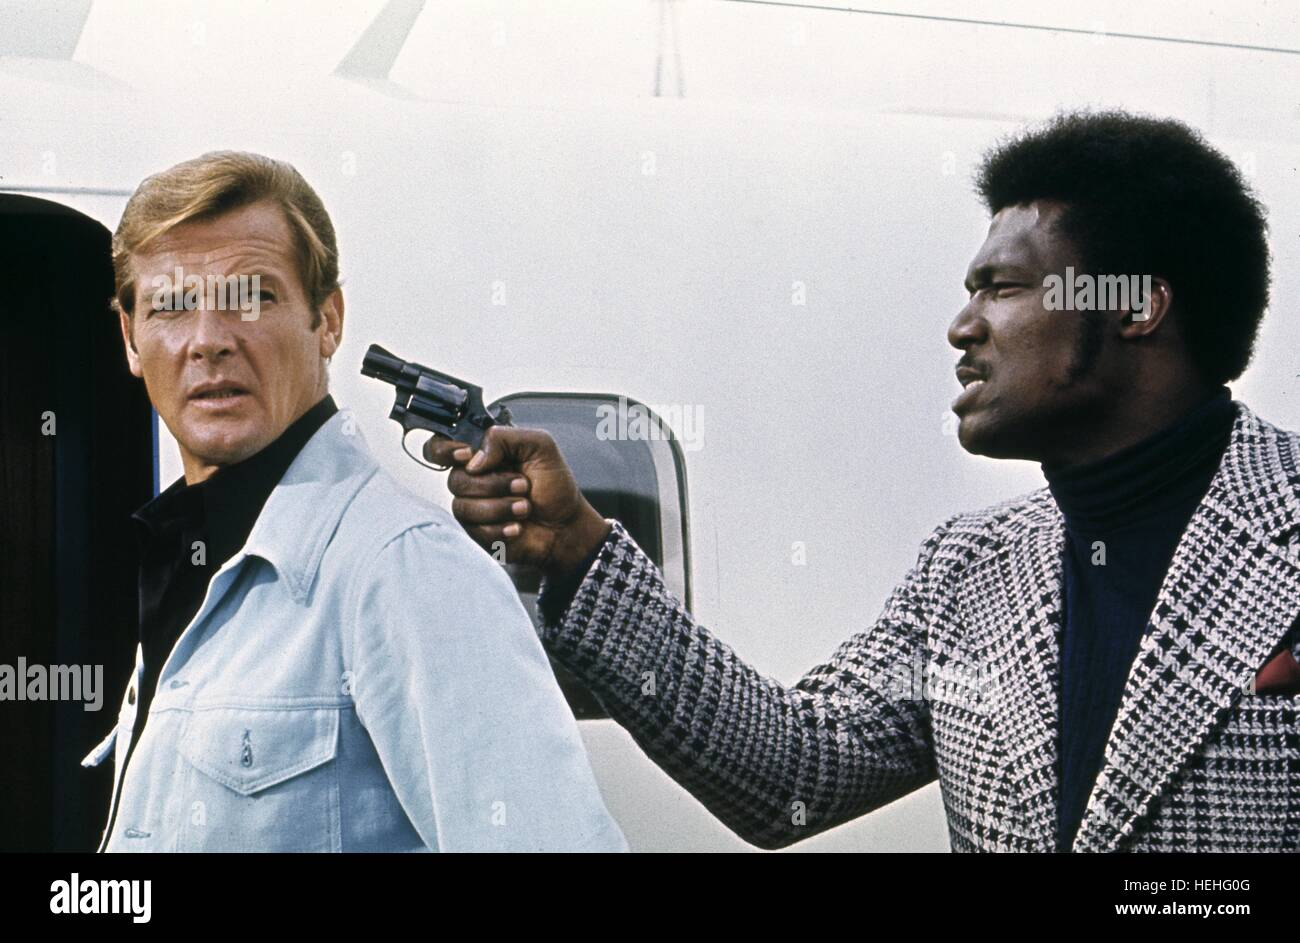 ROGER MOORE TOMMY LANE JAMES BOND: LIVE AND LET DIE (1973) - Stock Image